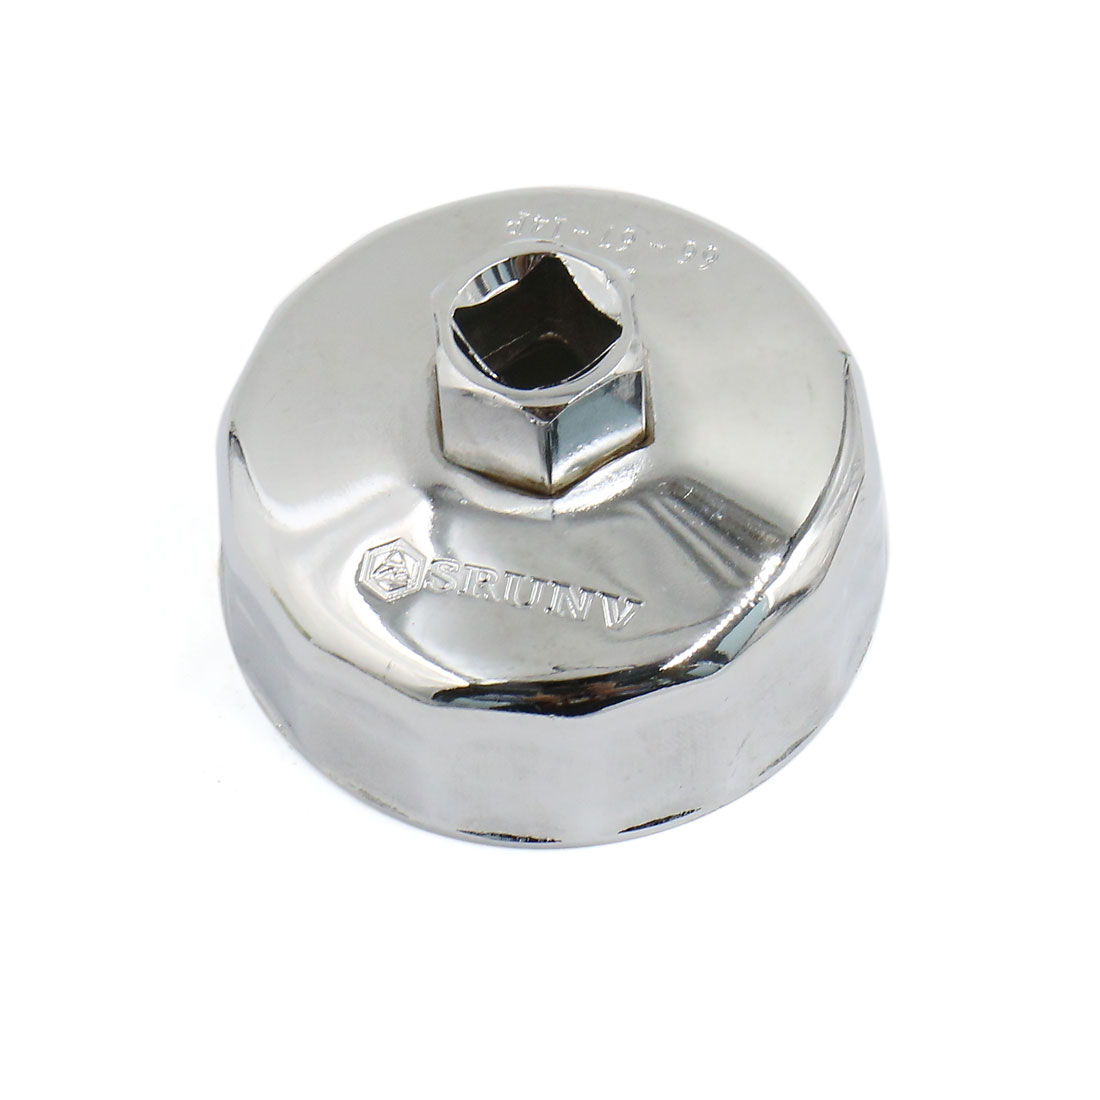 66~67mm Inner Diameter 14 Flutes Stainless Steel Alloy Oil Filter Wrench Cap Shape for Car